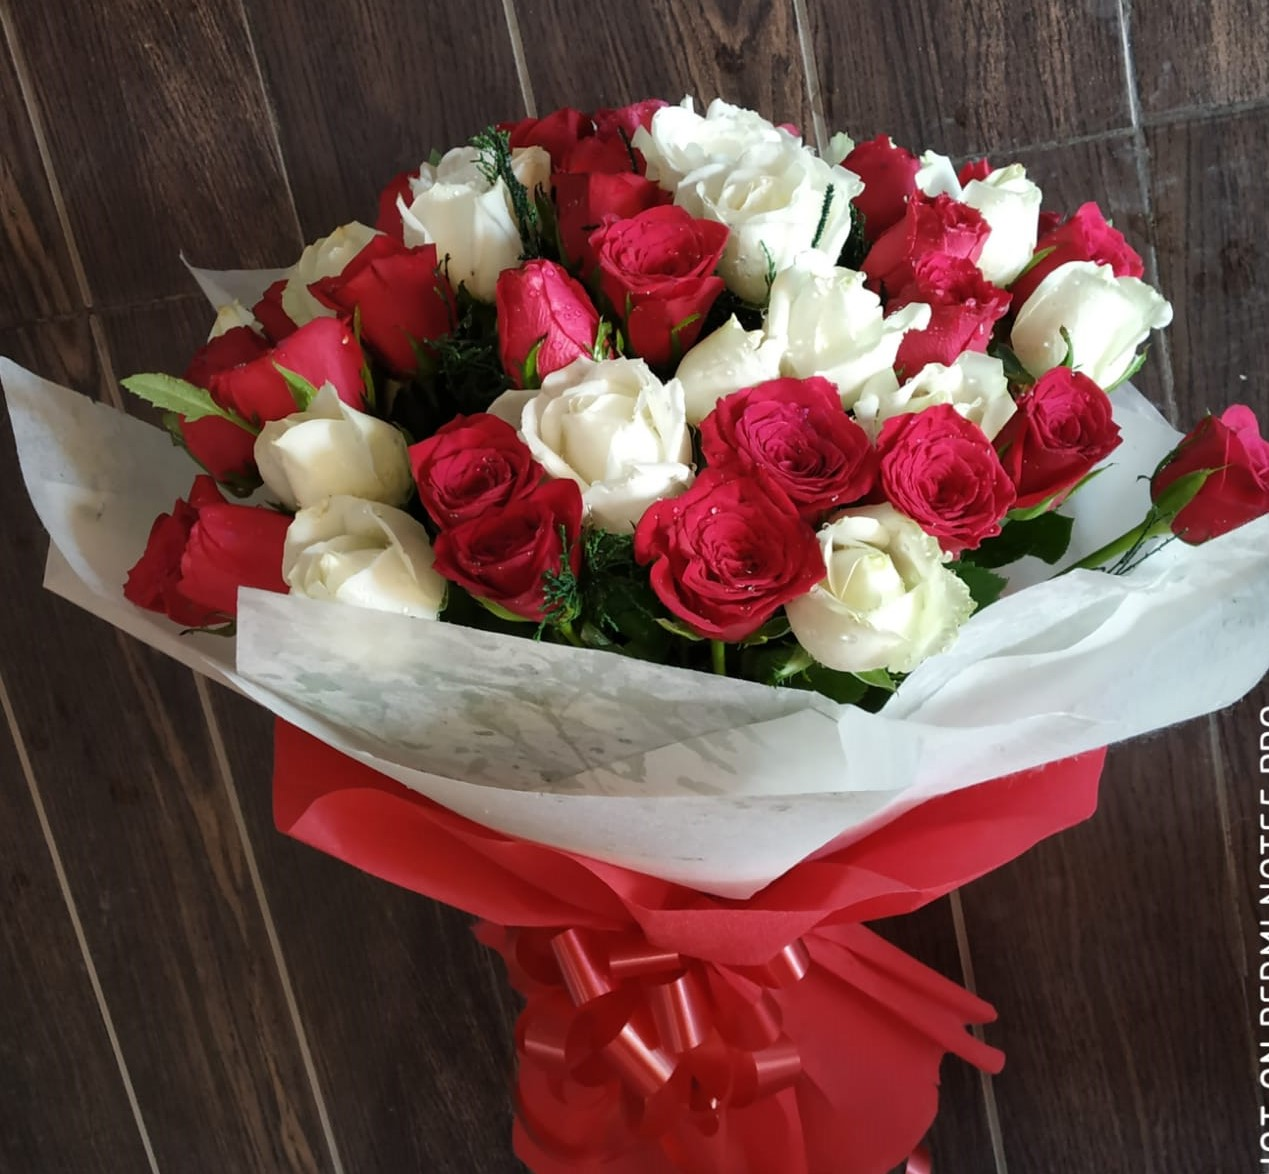 Cake Delivery in Park View City 2 GurgaonRed & White Roses in Duble Layer Packing